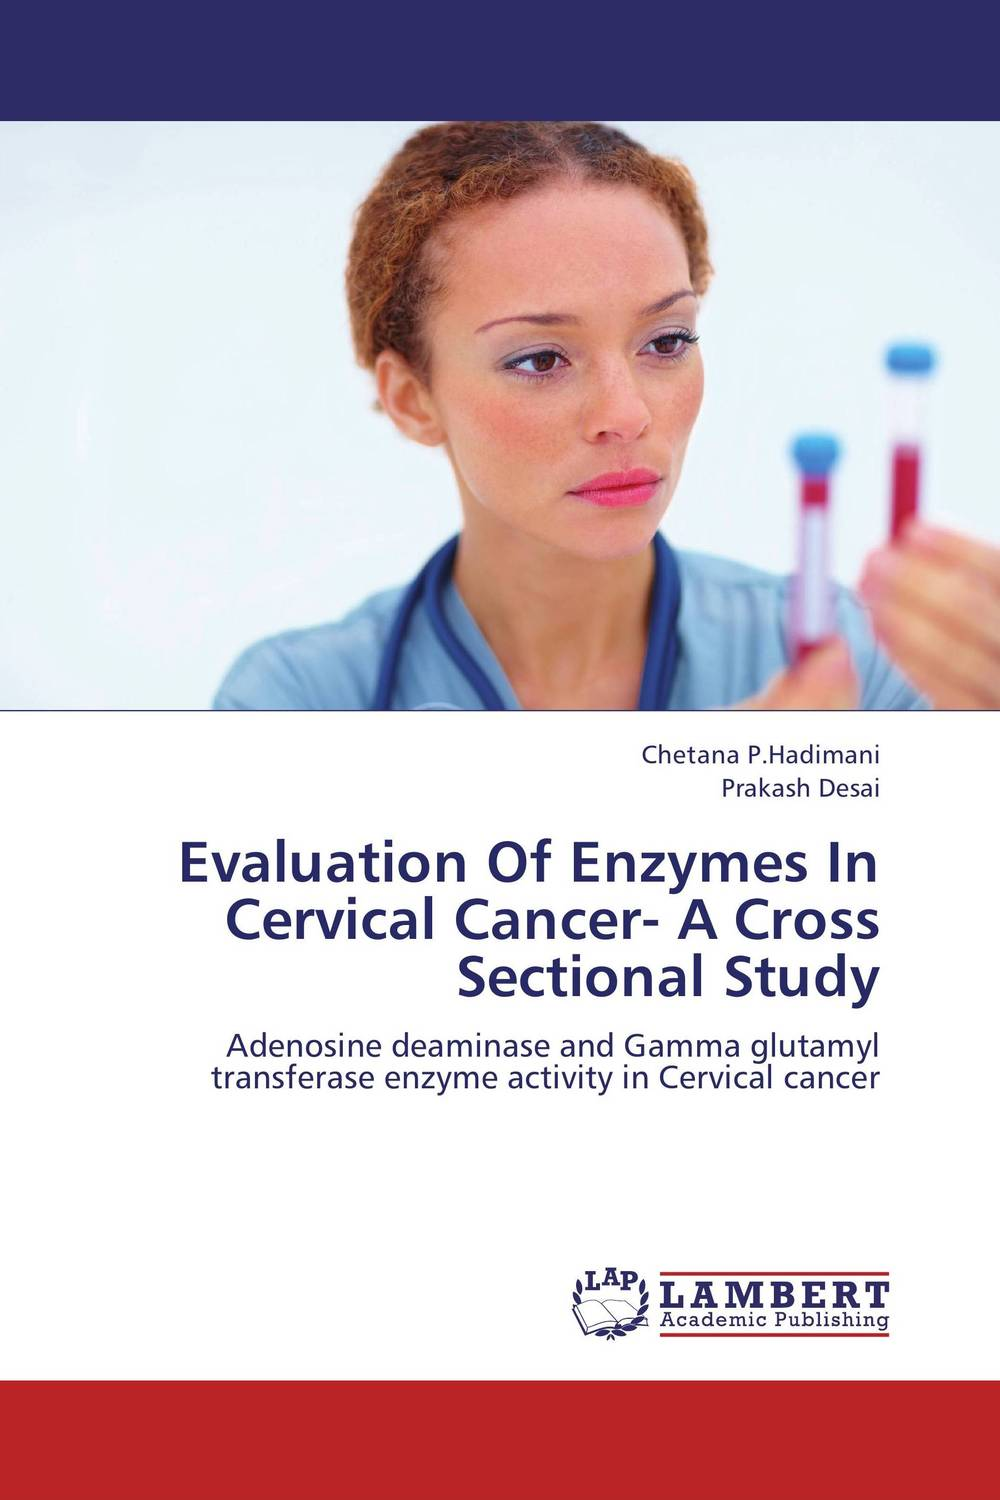 Evaluation Of Enzymes In Cervical Cancer- A Cross Sectional Study late stage diagnosis of cervical cancer